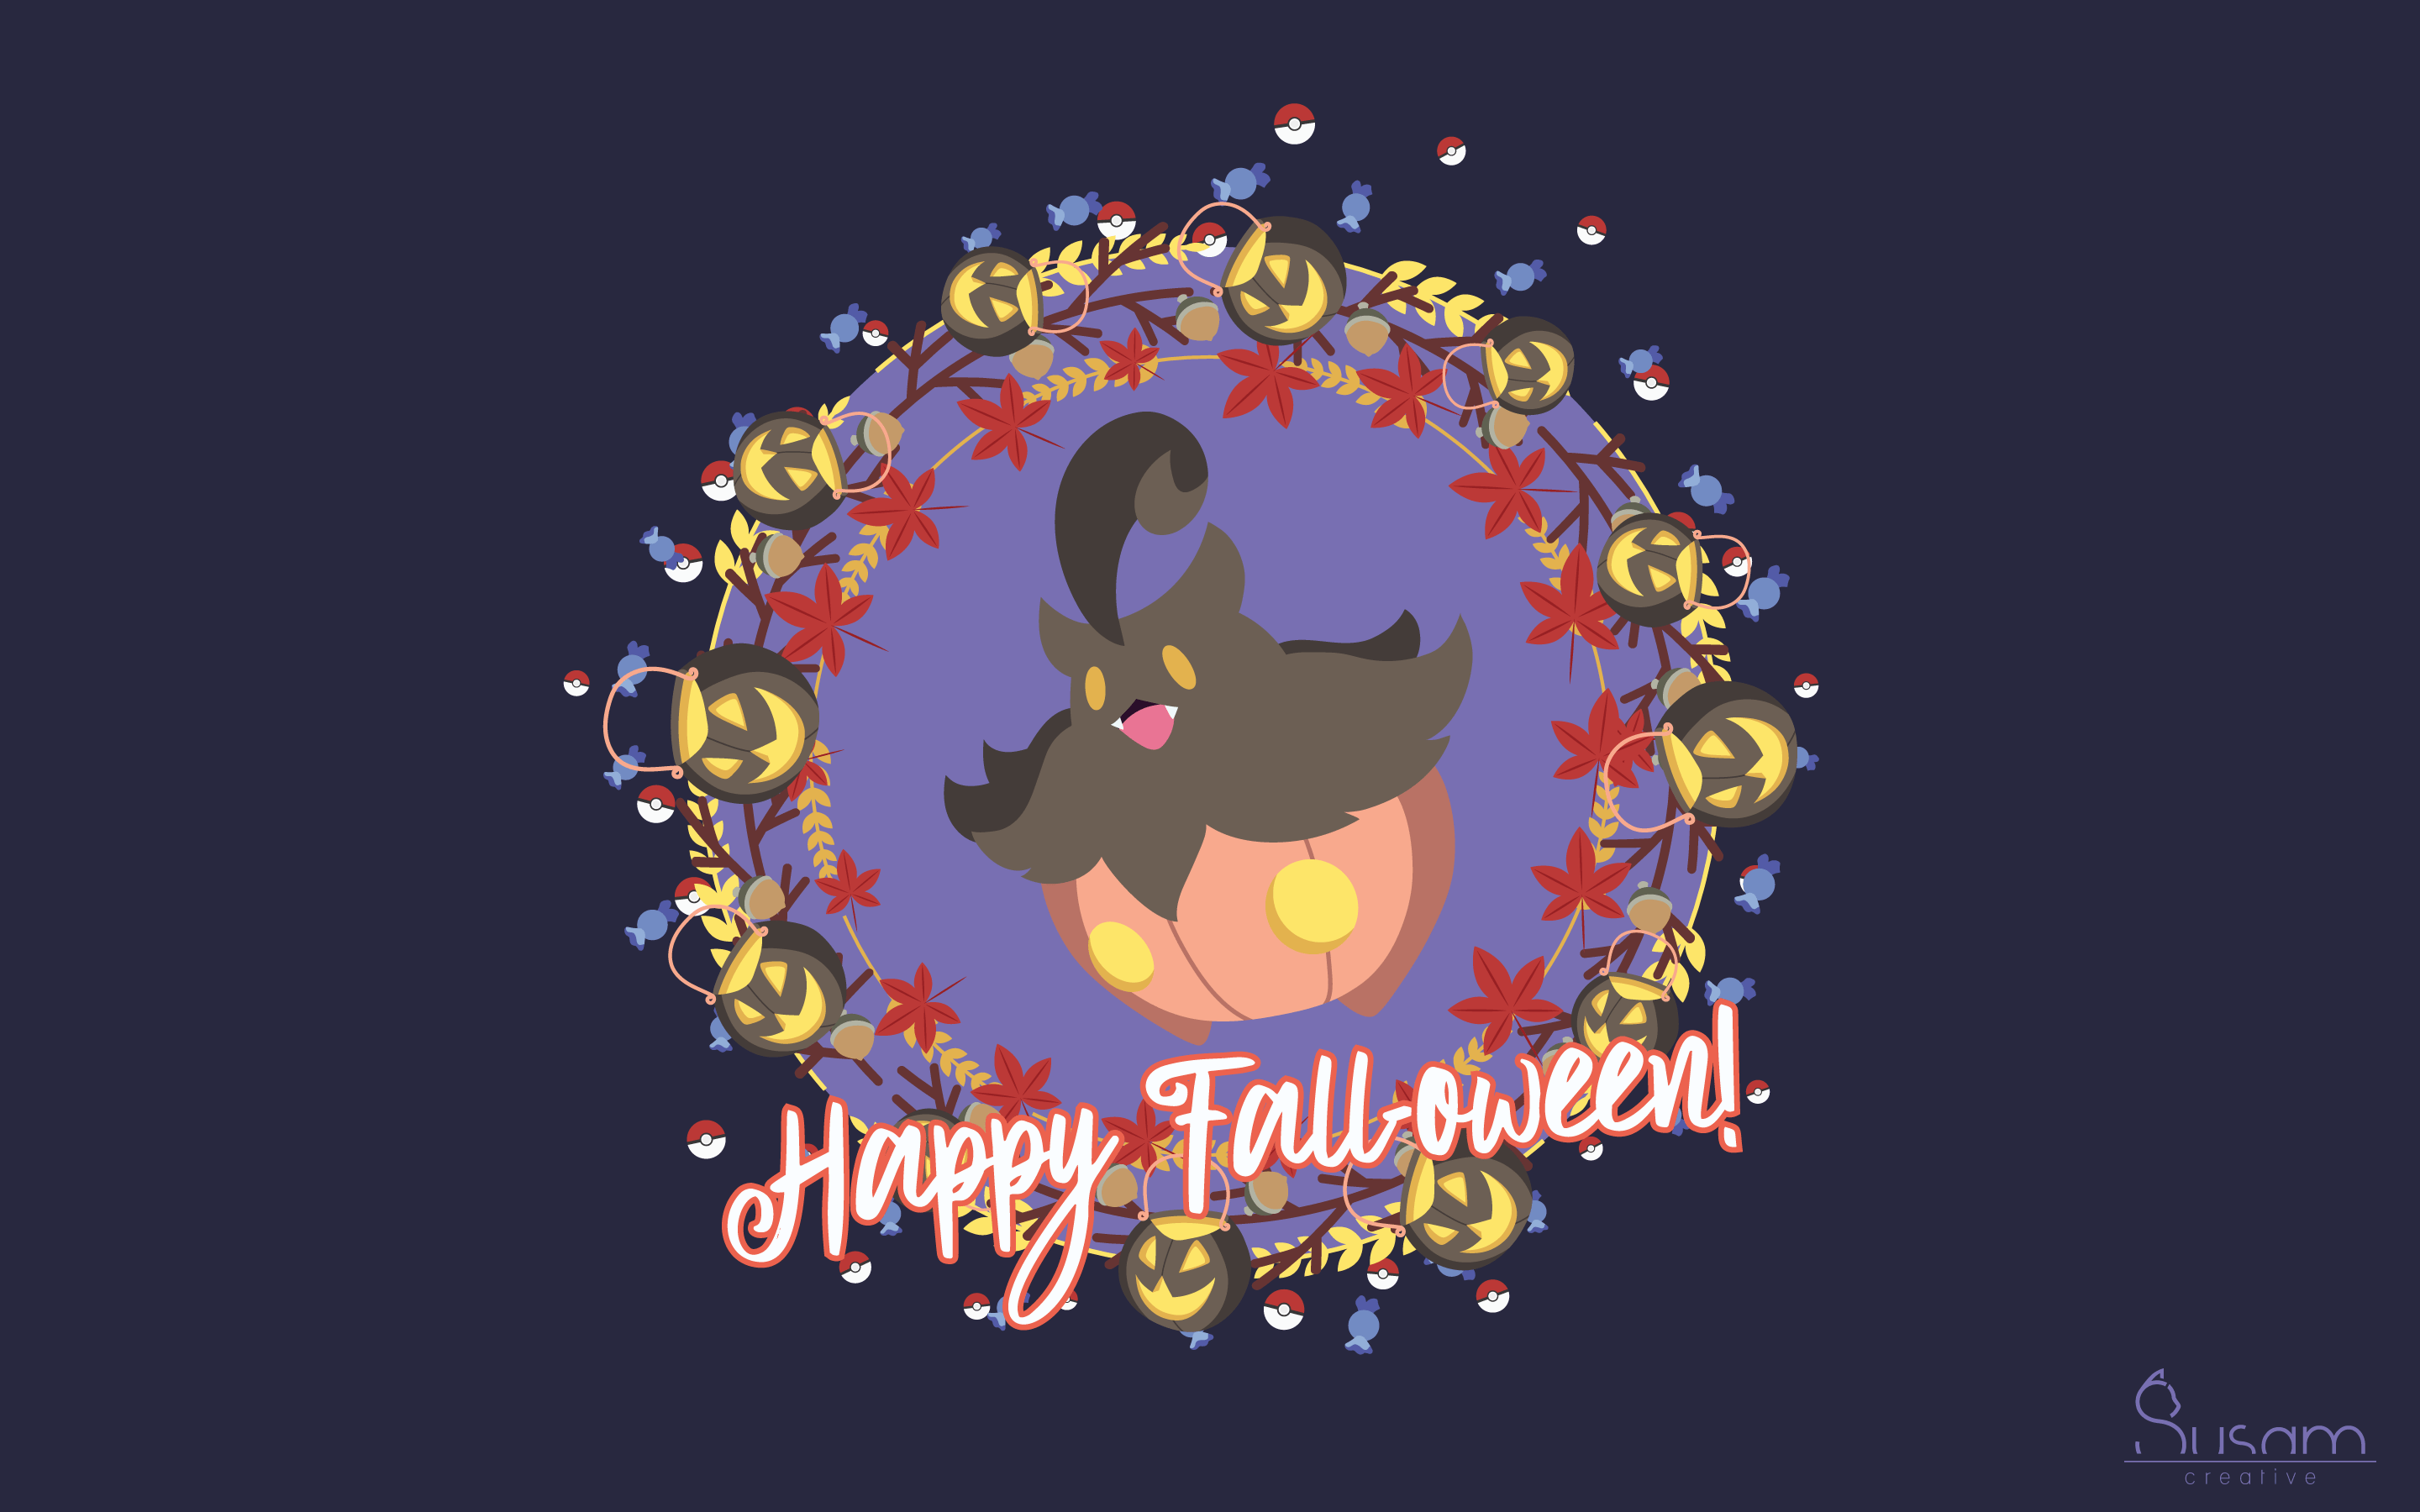 October 2017 Wallpaper - A Pokemon Halloween - Susam Creative